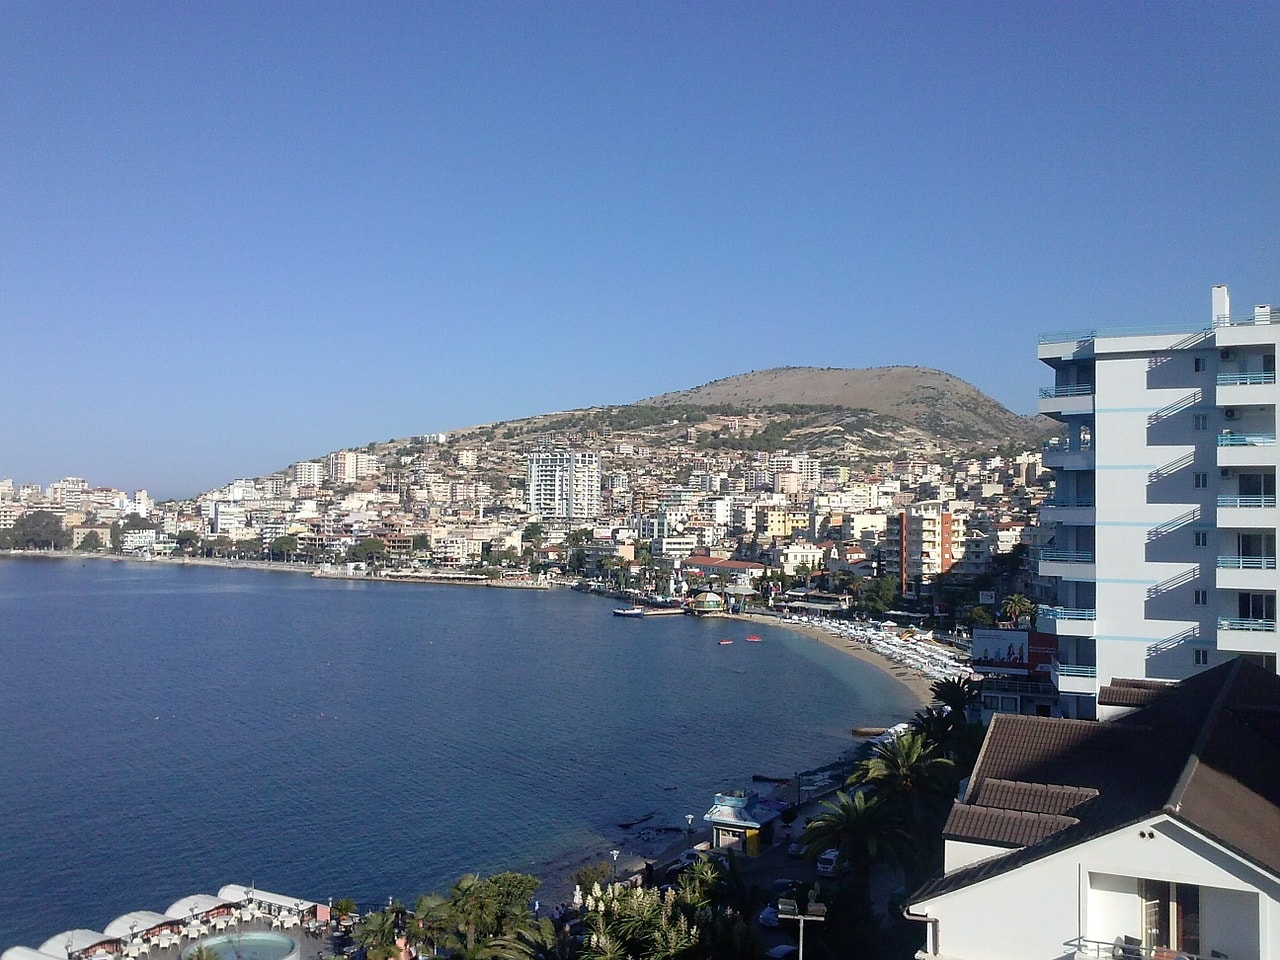 Another look at Saranda